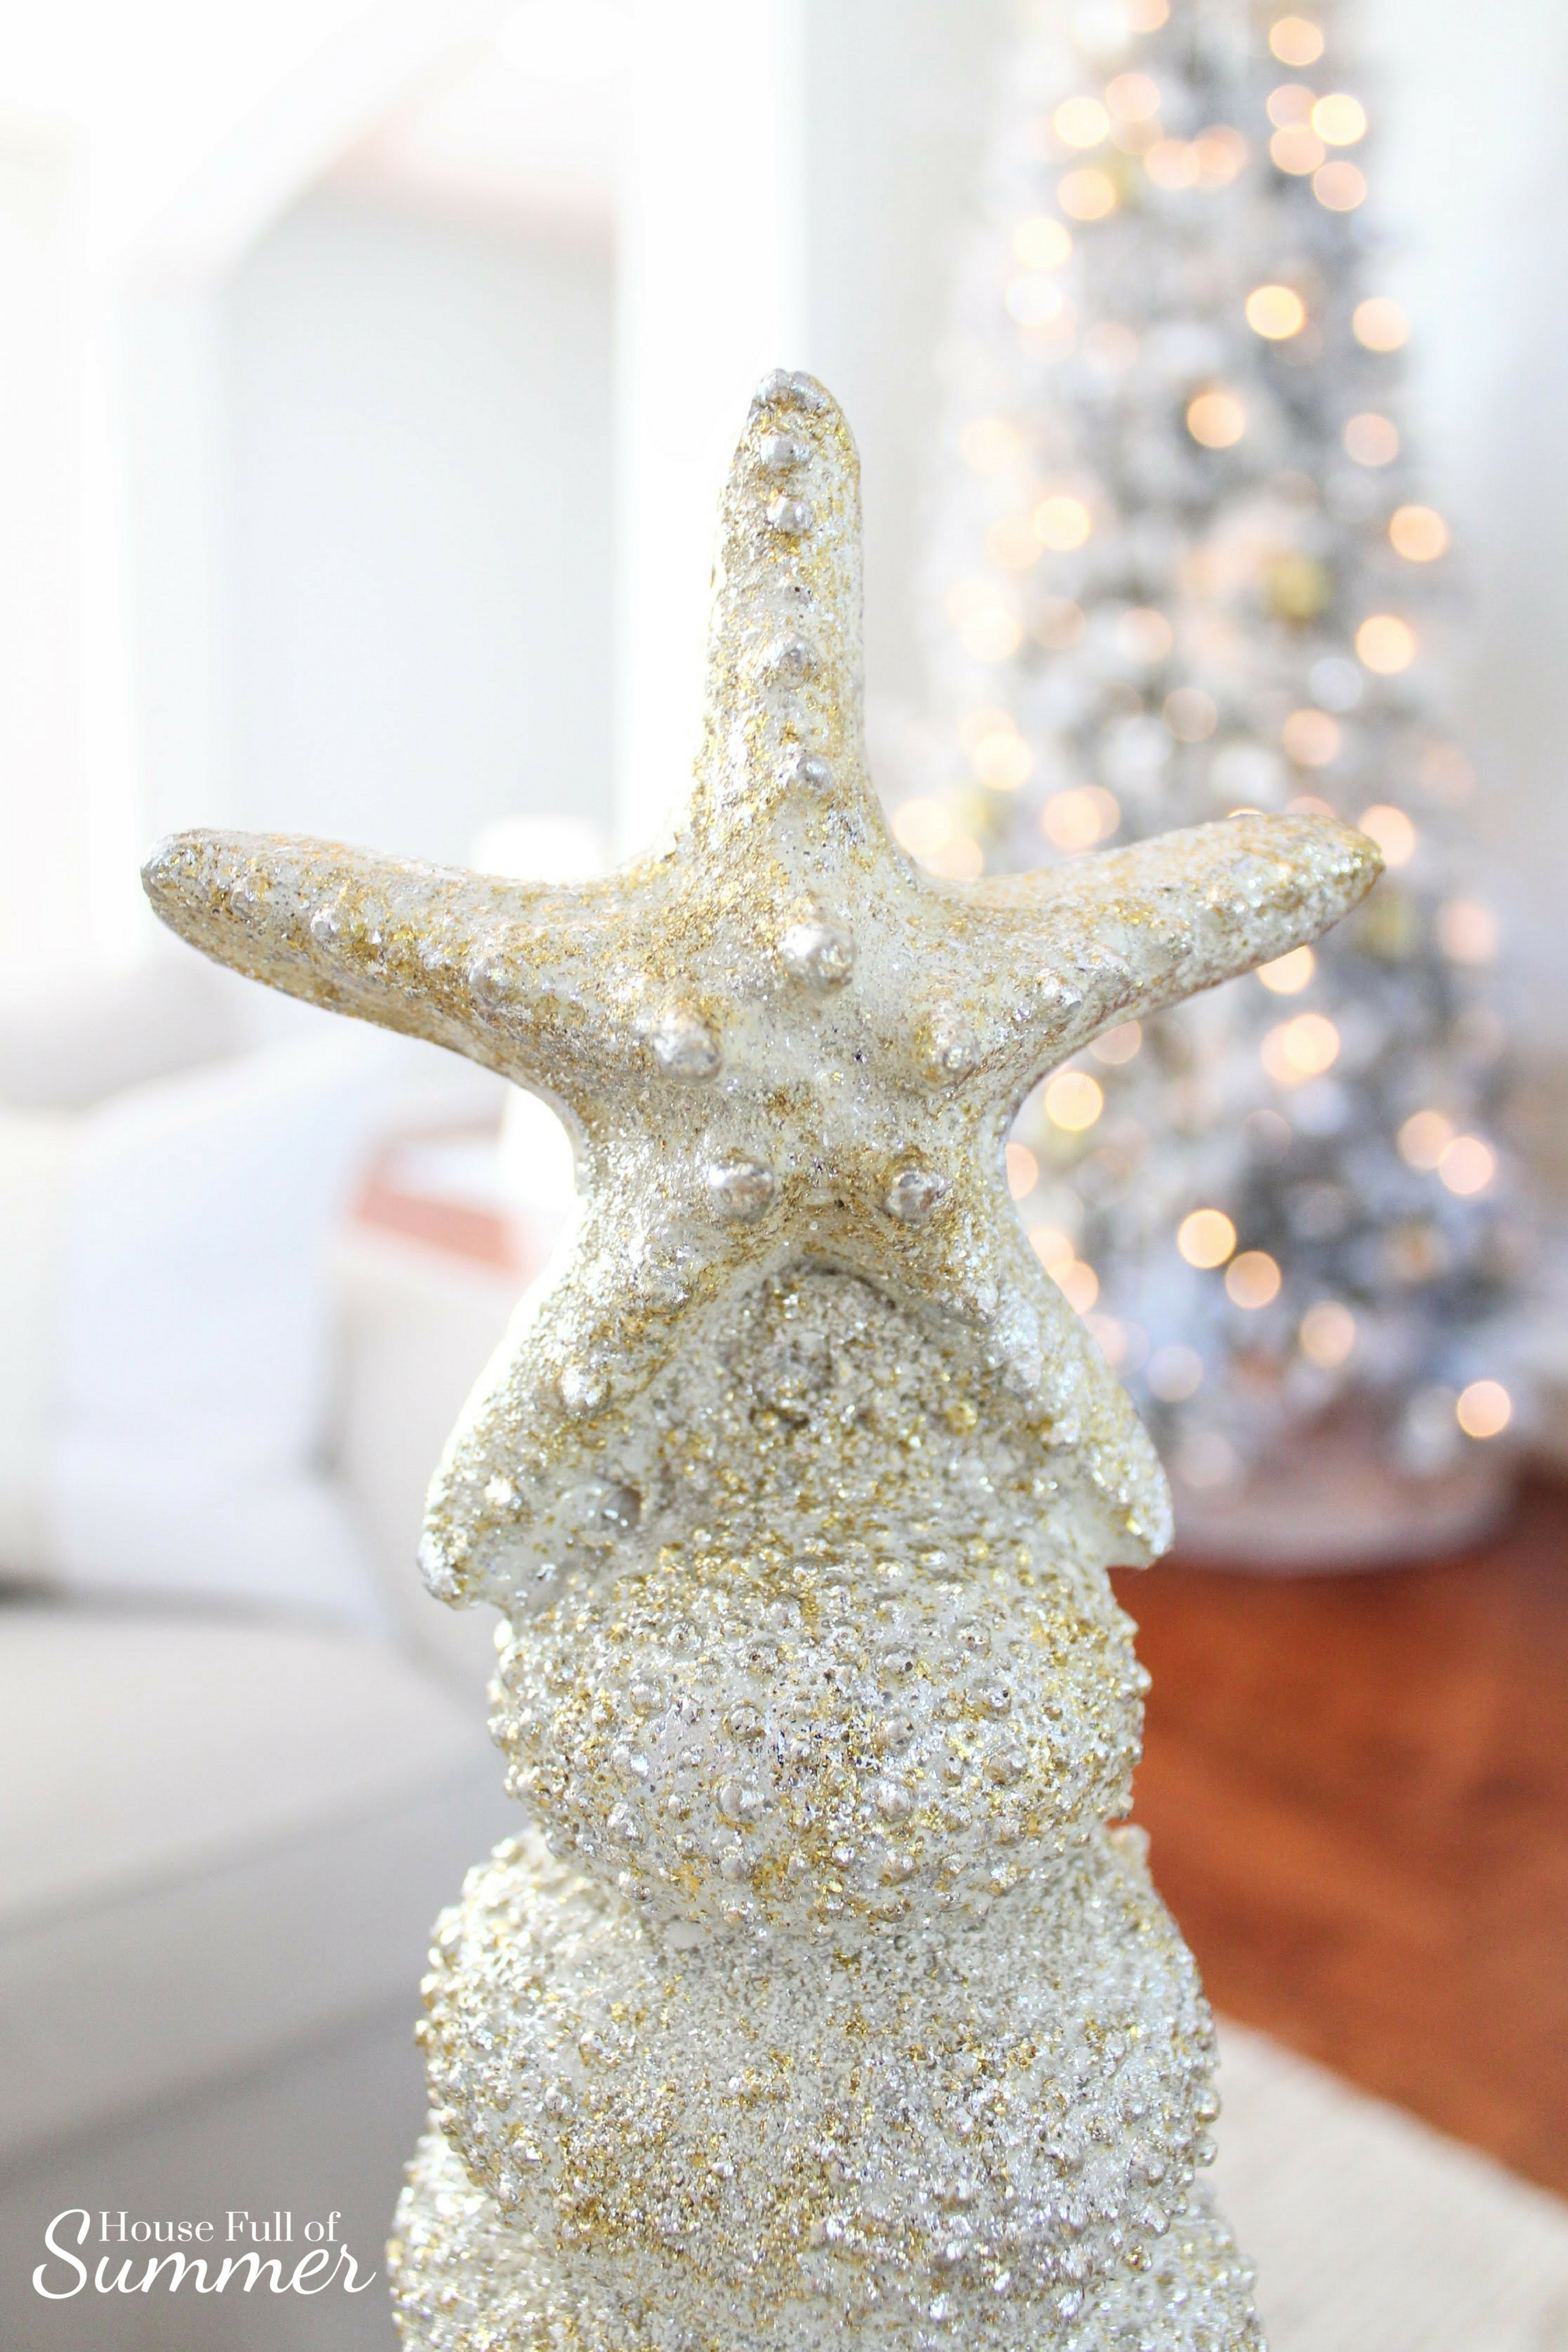 Creating a Glam Coastal Christmas with Bealls Florida | House Full of Summer blog - neutral christmas decor, gold coastal christmas throw pillow, tassel pillow, decorative pillow, florida christmas, beachy holiday decor, silver and gold, neutral interior ideas, christmas at the beach